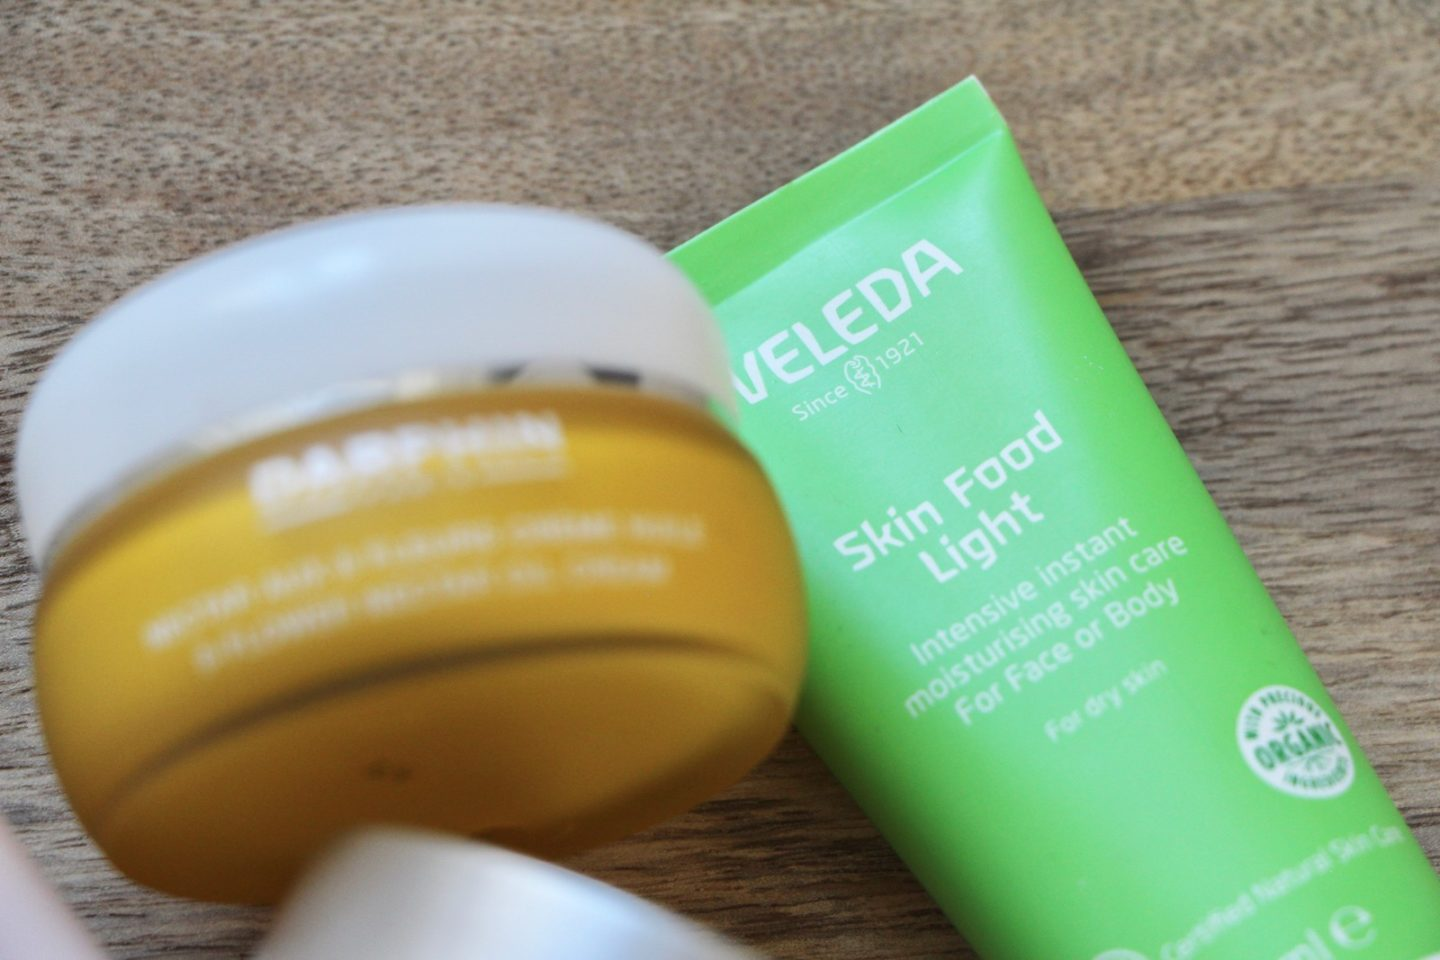 weleda skin food light review